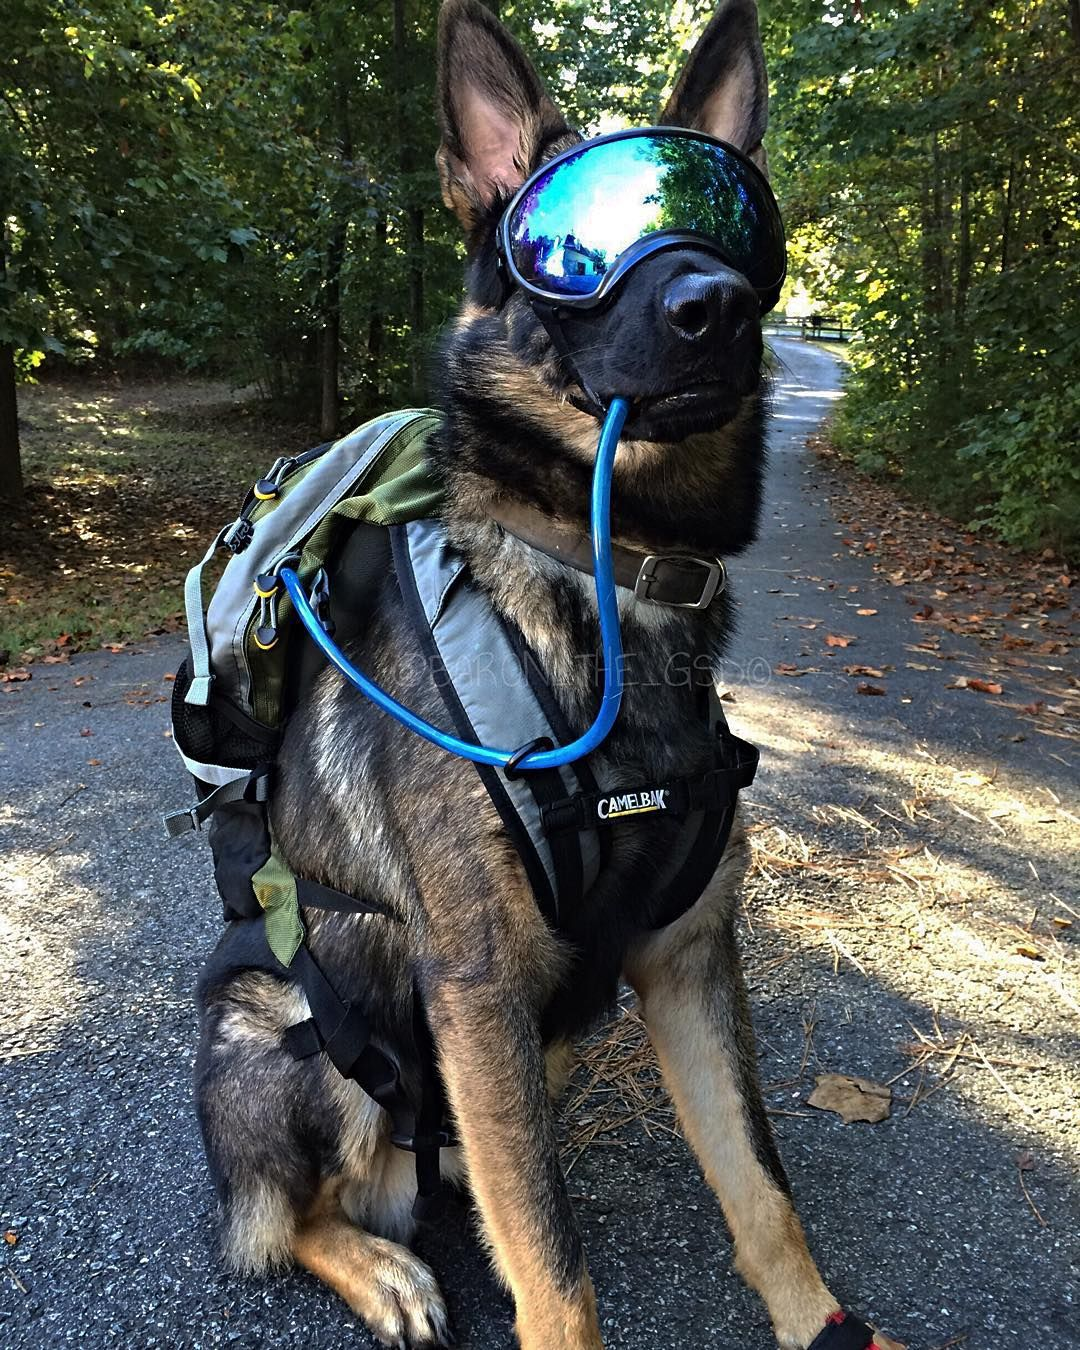 2 114 Likes 226 Comments Baron Vom Herrn Baron The Gsd On Instagram We Take Hiking Seriously Keeping Your Military Dogs War Dogs Military Working Dogs